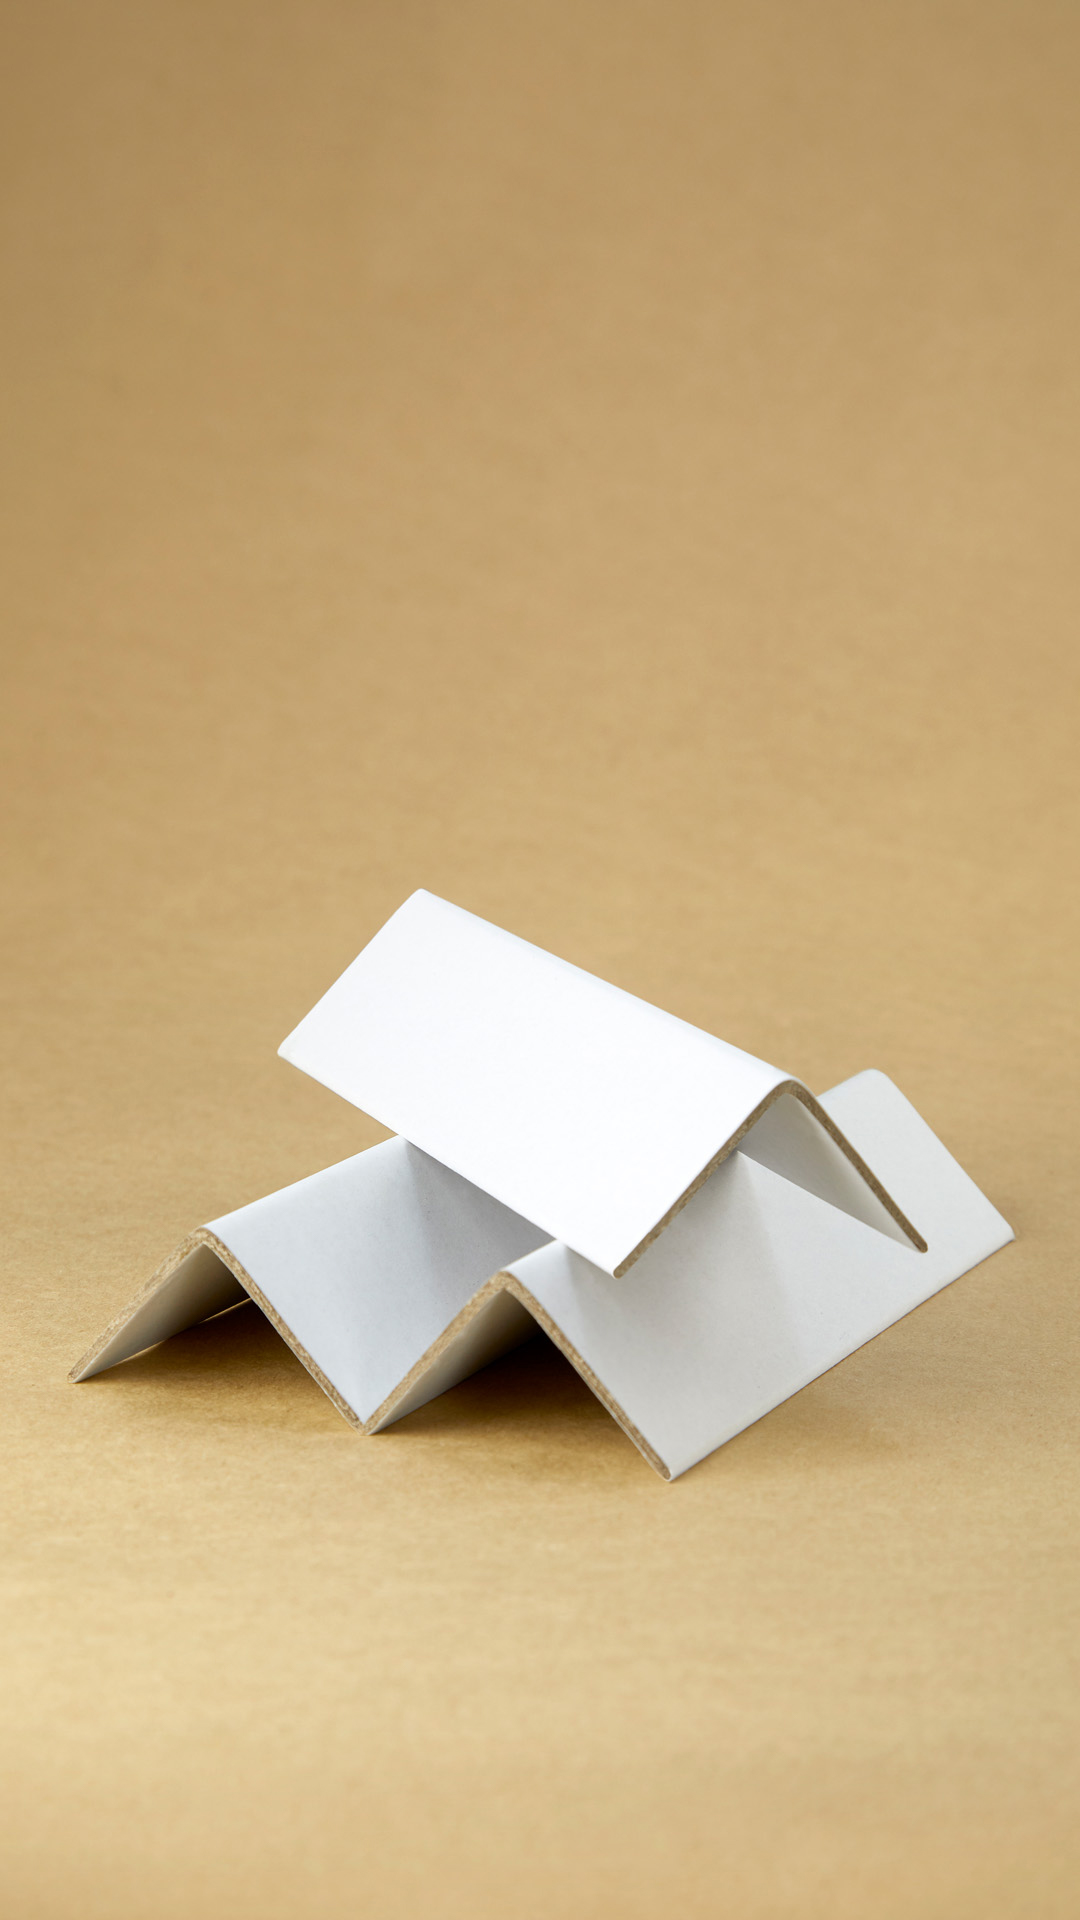 Paper angles